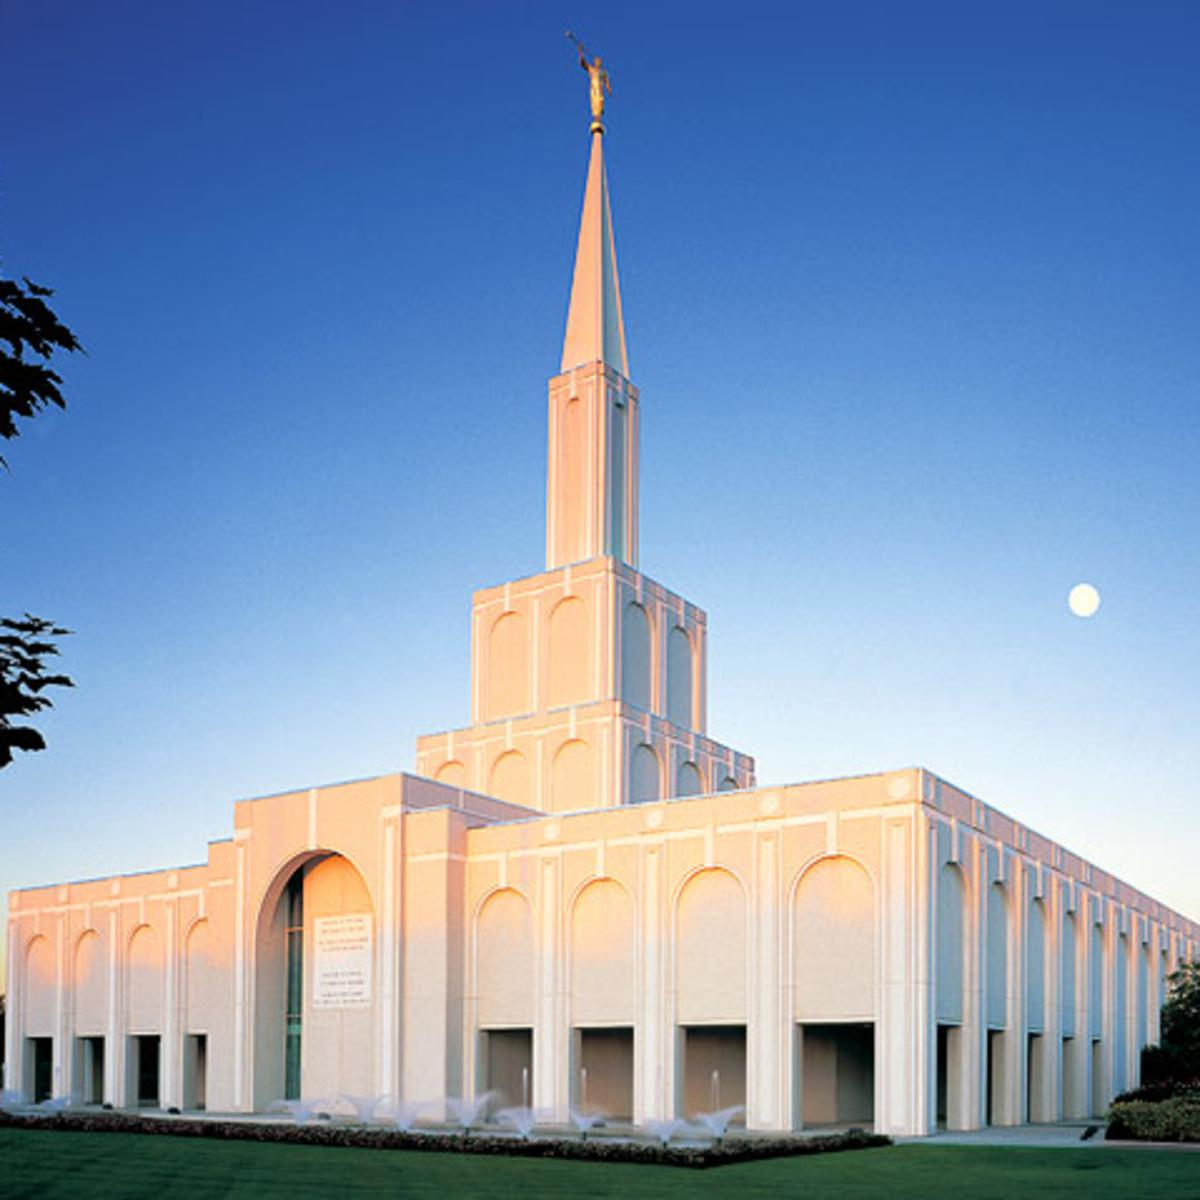 Image of the Toronto Ontario Mormon Temple